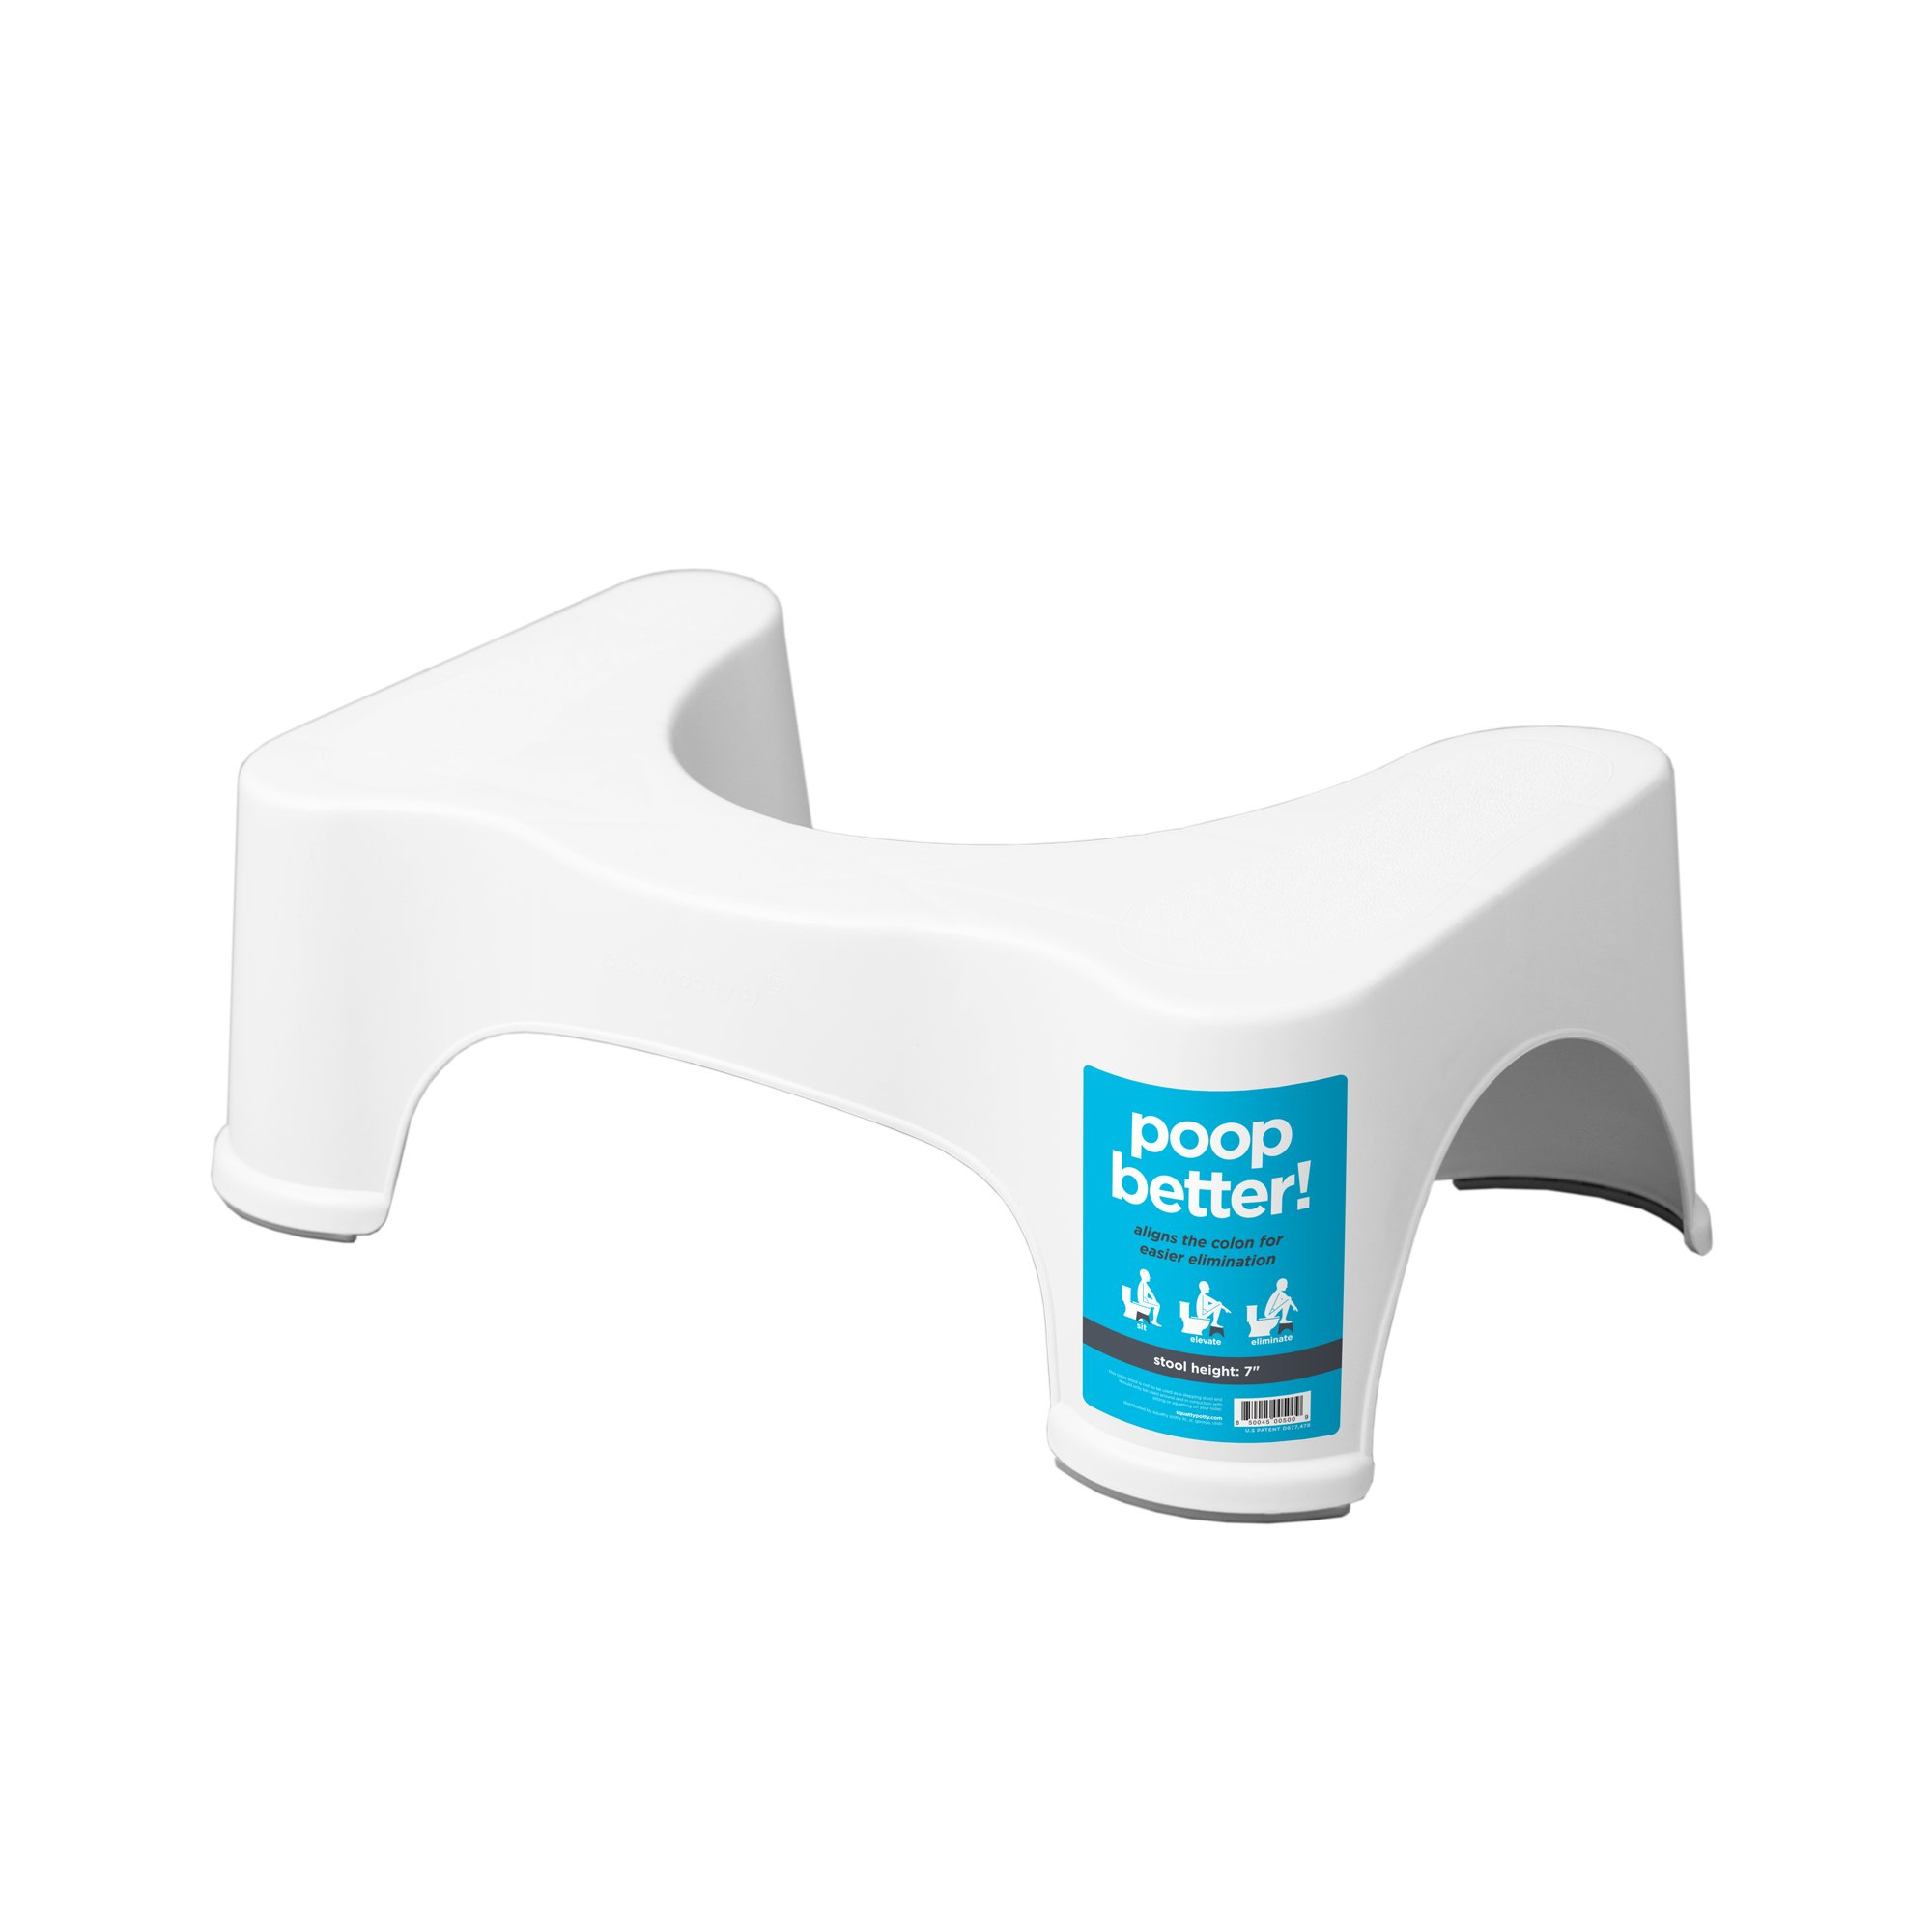 Squatty Potty The Original Bathroom Toilet Stool, 7'' height, White by Squatty Potty